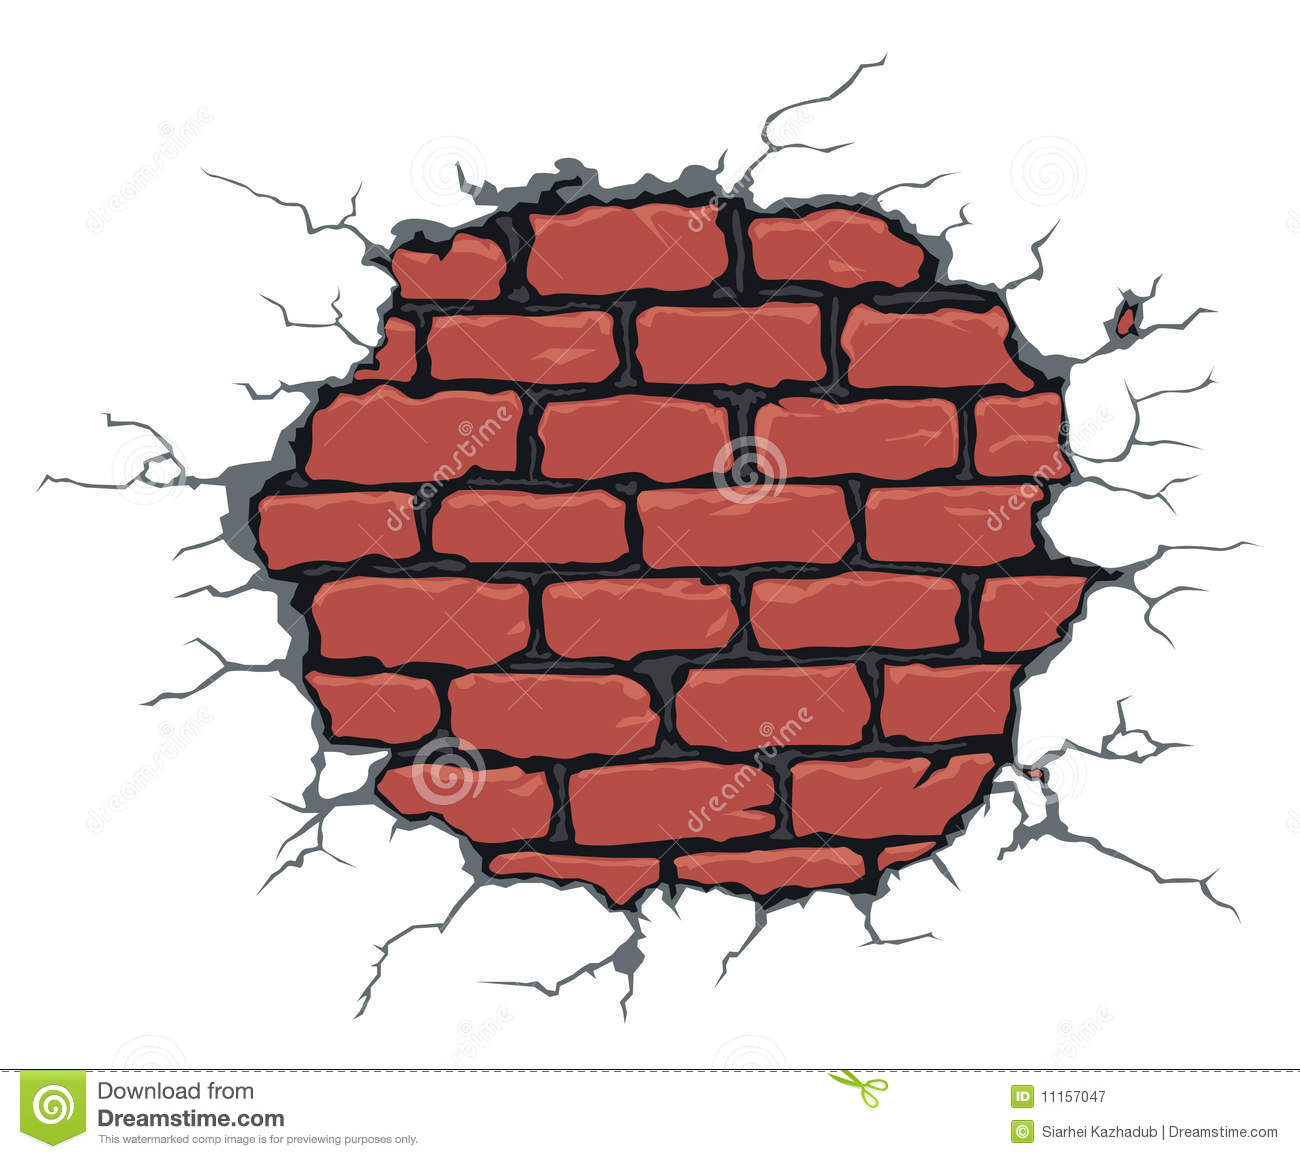 Free 3d Pile Of Bricks Wallpaper Cracked Brick Wall Stock Vector Illustration Of Crackled